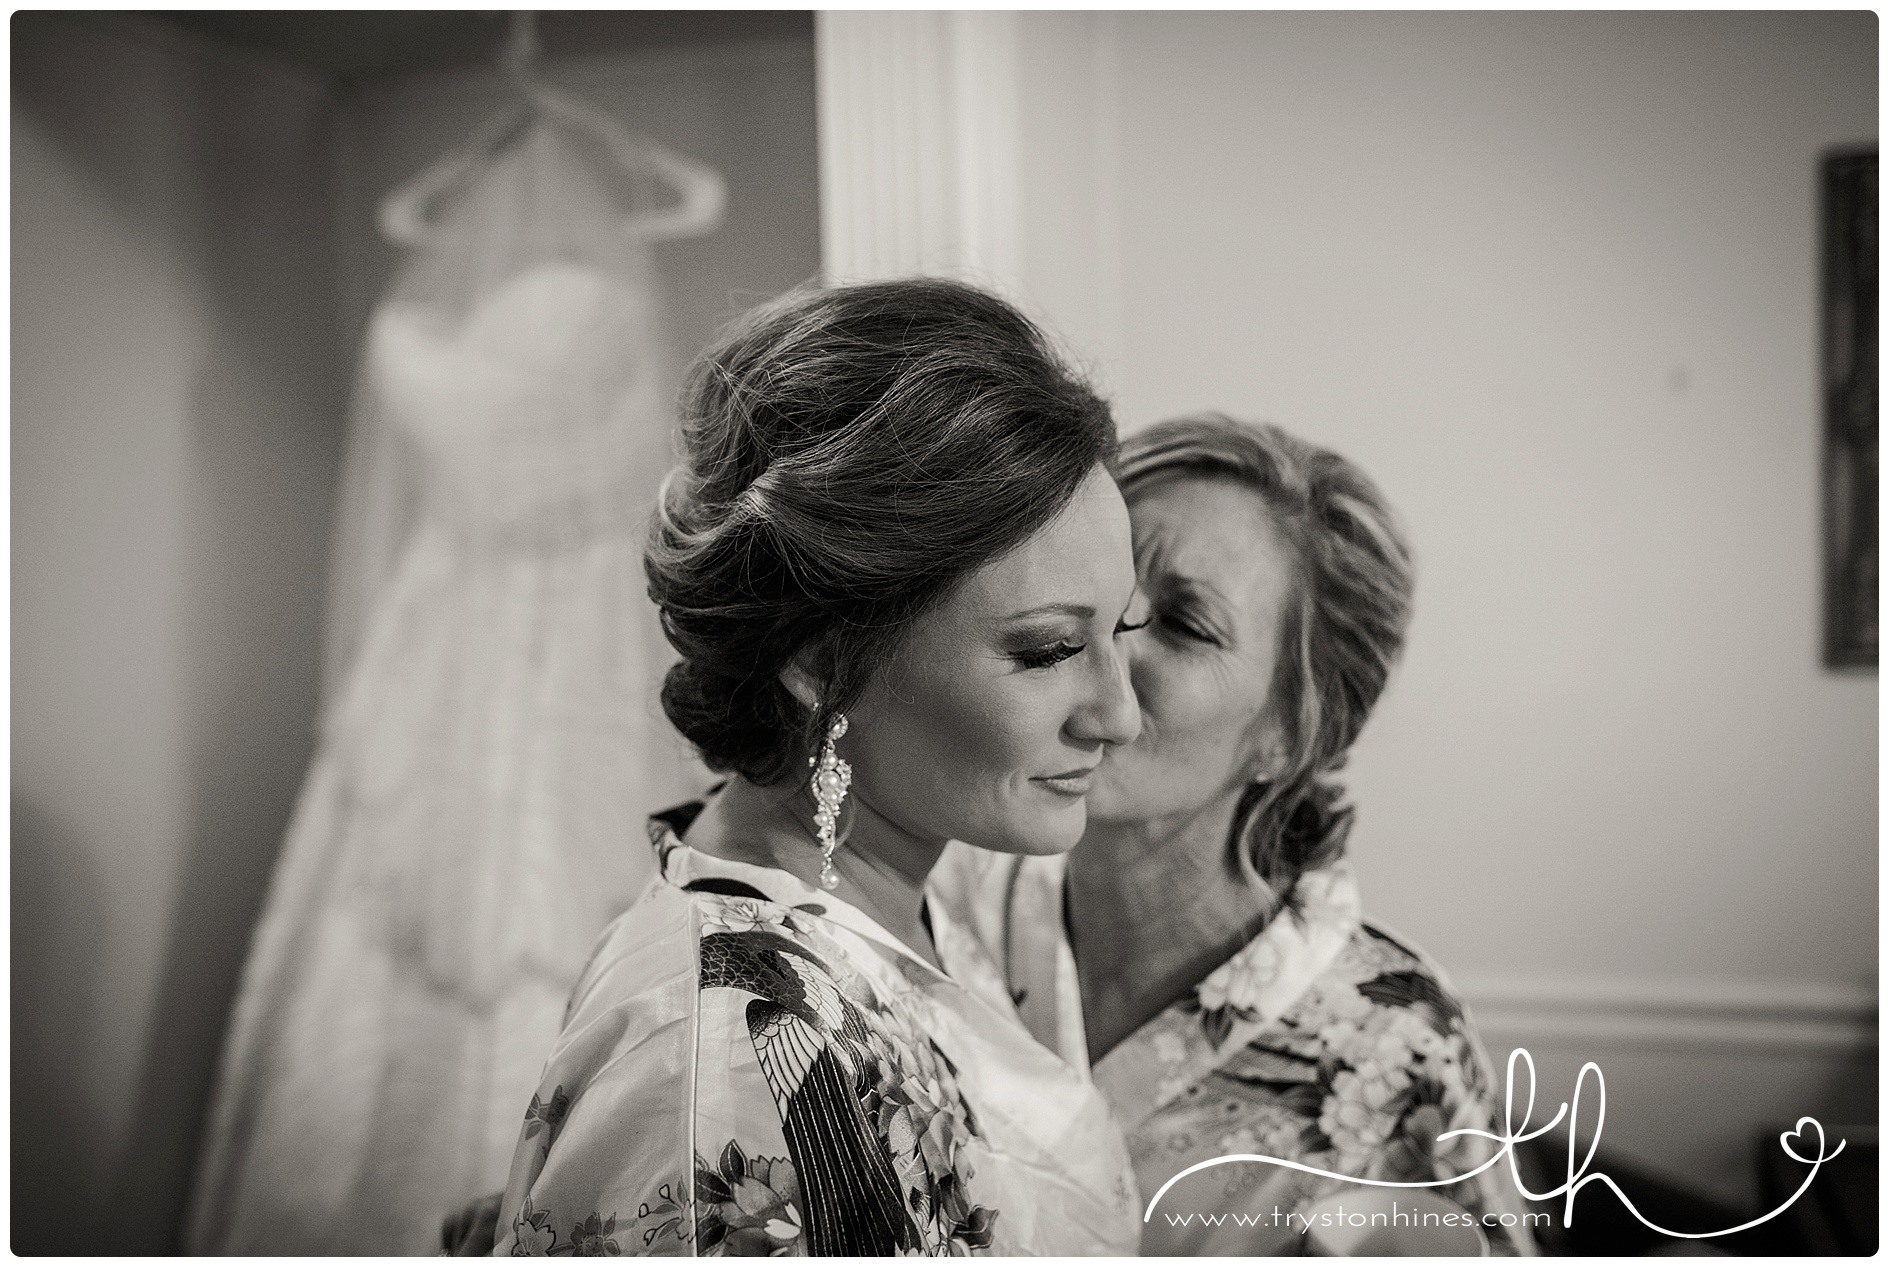 Tryston Hines Photography , from  Monica + Ryan 's wedding